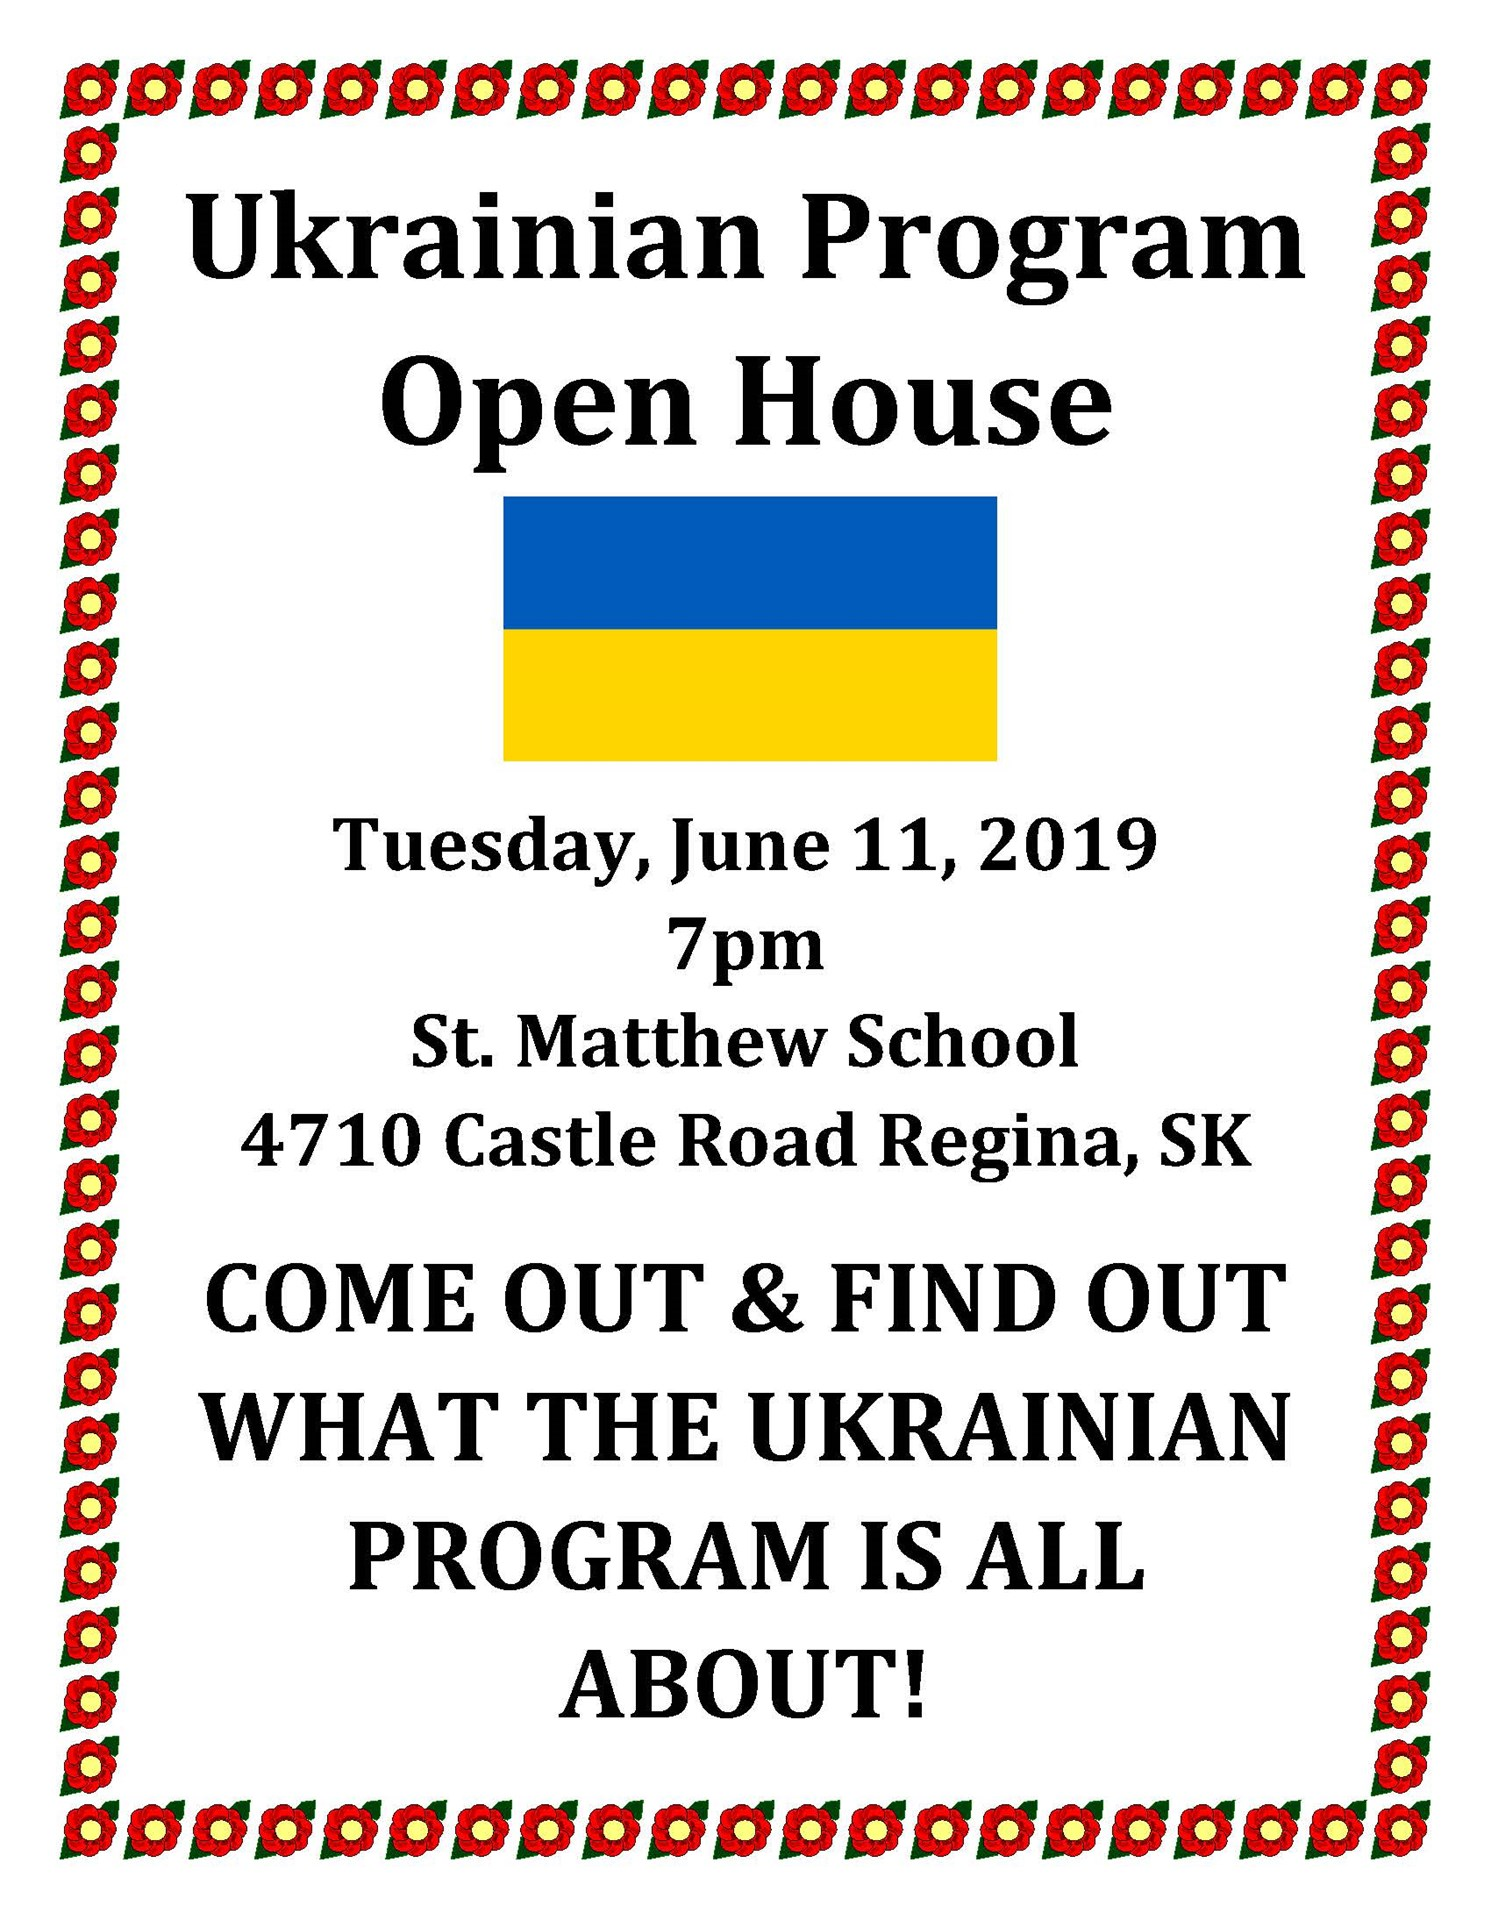 Ukrainian Program Open House Poster.jpg